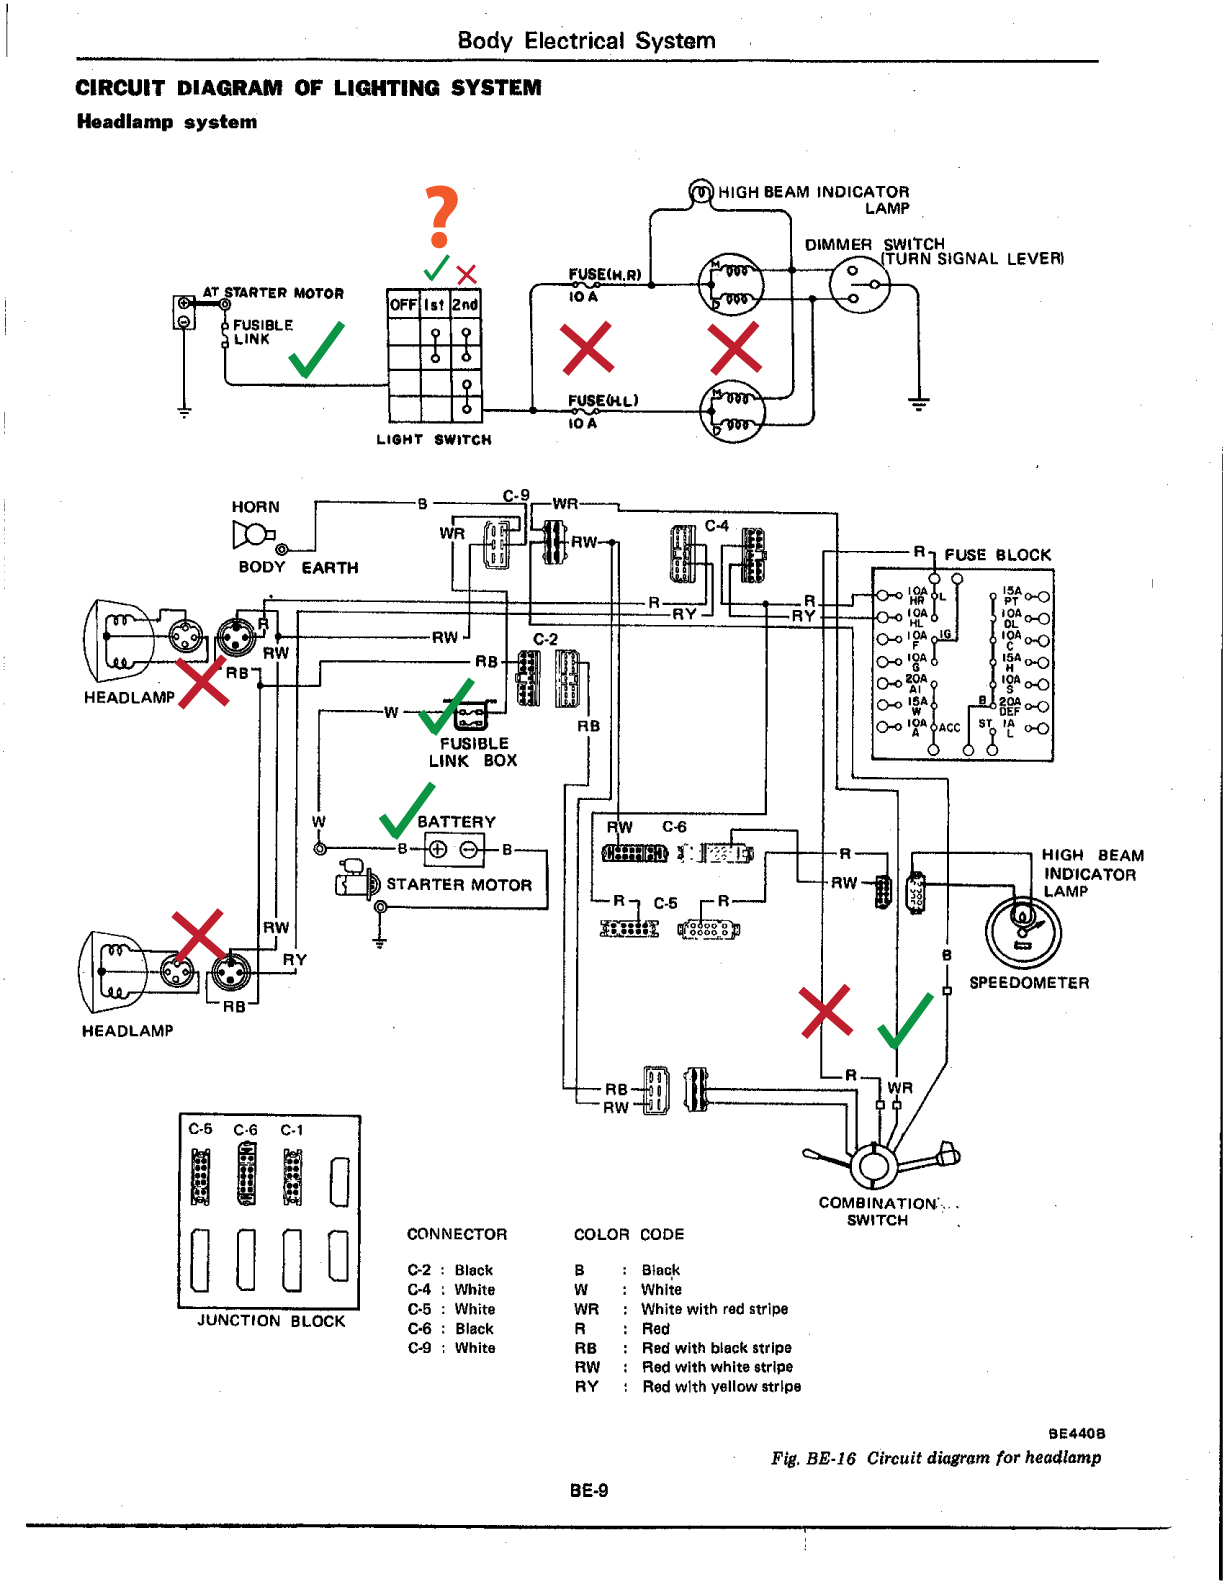 280zx Radio Wiring Diagram | Wiring Diagram on 1978 280z wiring diagram, 1971 240z wiring diagram, 1975 280z wiring diagram, 1977 280z wiring diagram, 1976 280z wiring diagram,